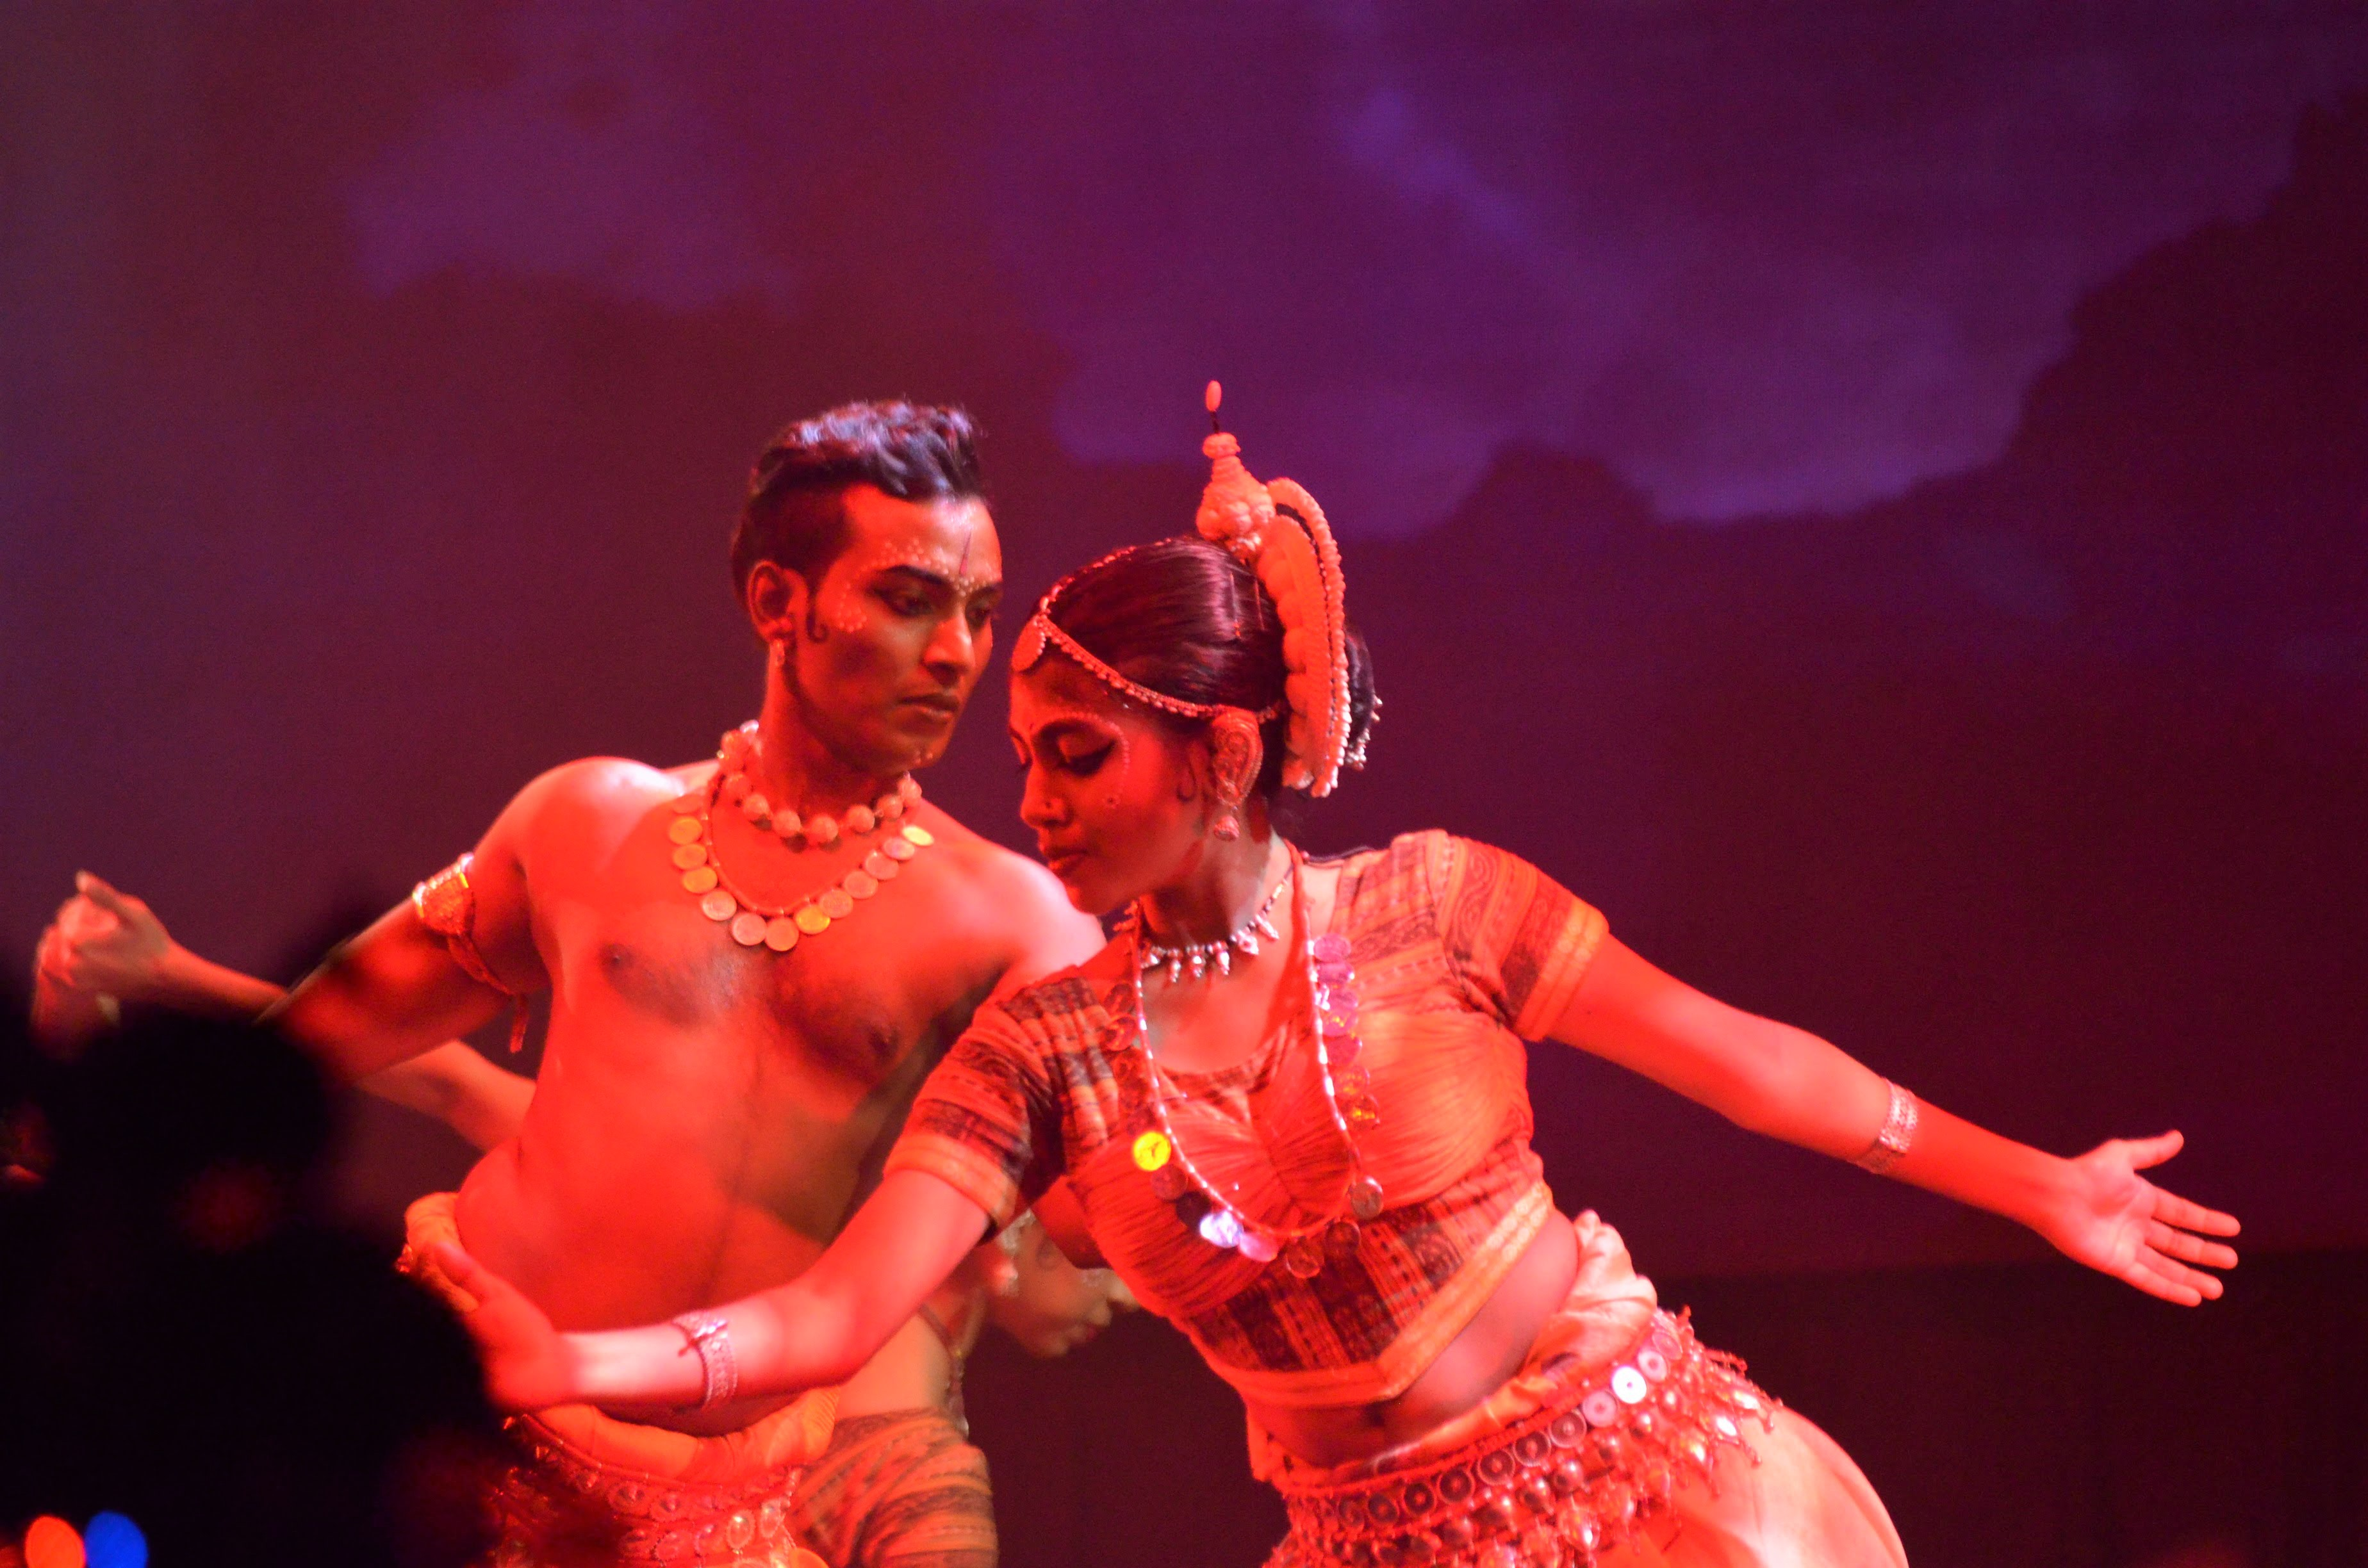 The artistes retold myths from Indian classic mythology that have become part of the lore shared with ASEAN's culture.